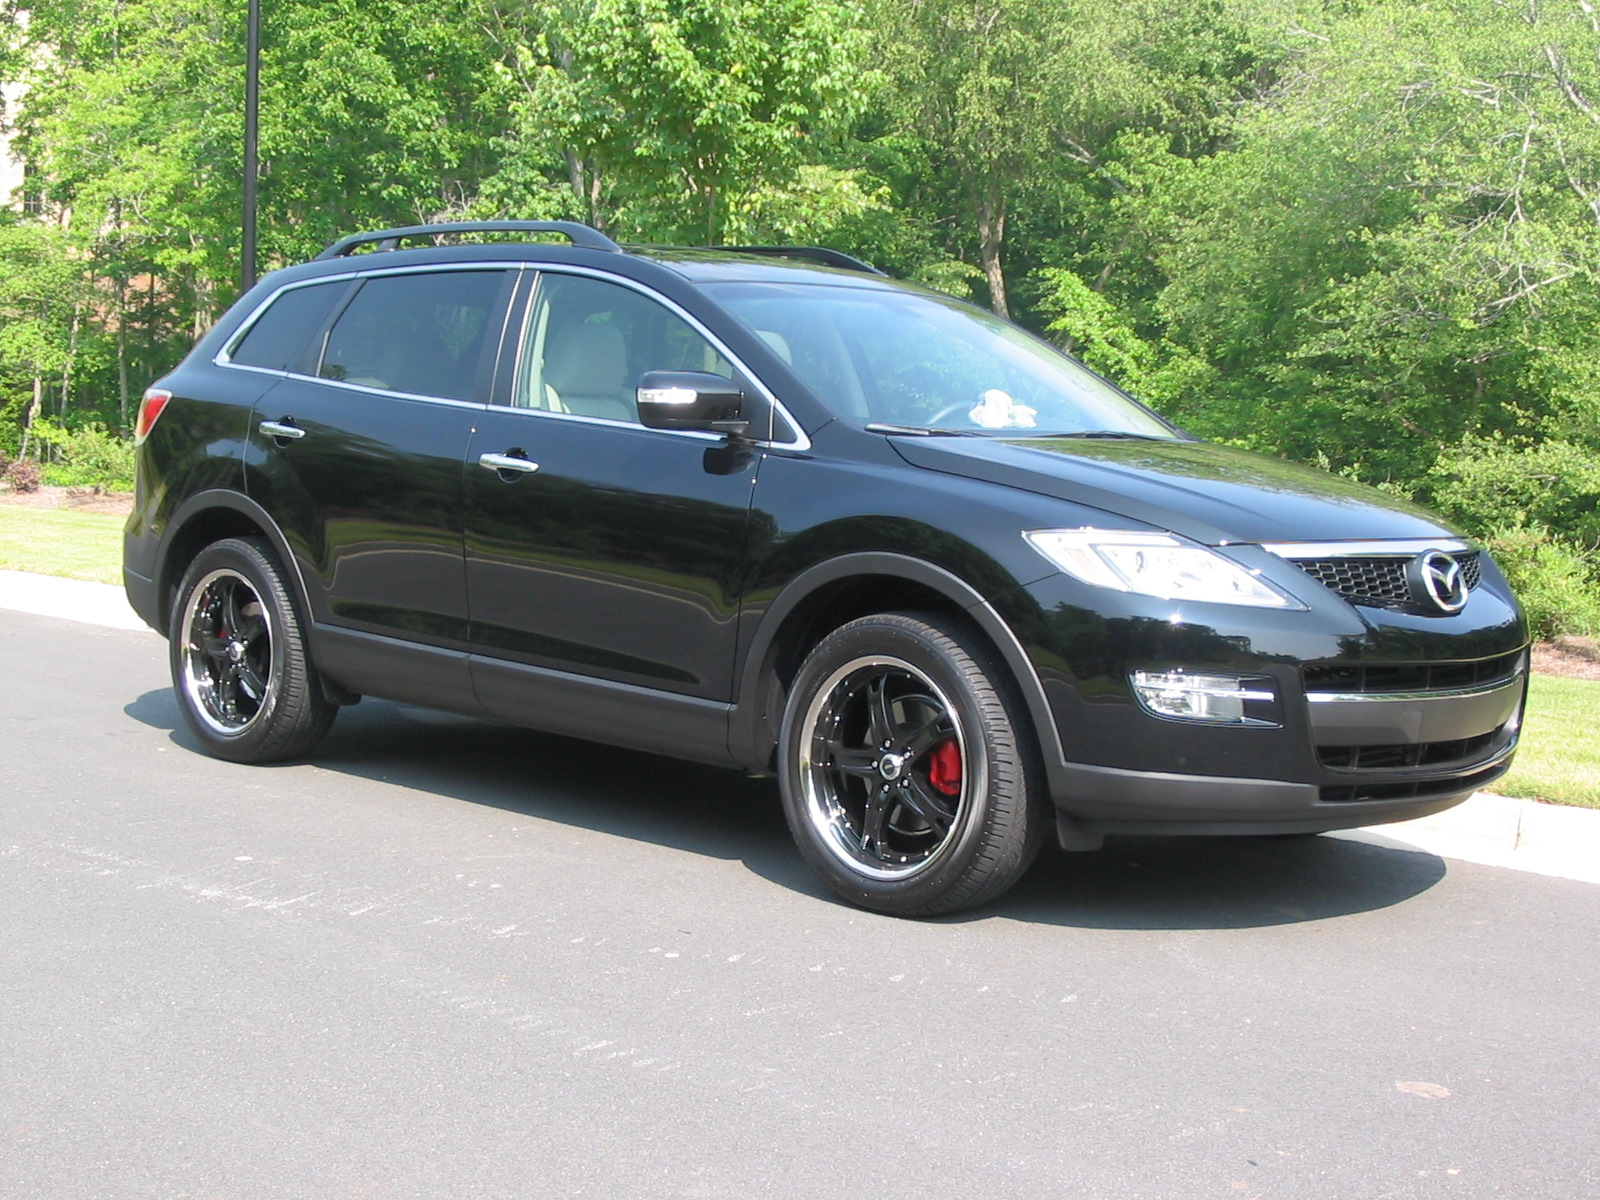 2007 Mazda CX-9 Grand Touring picture, exterior